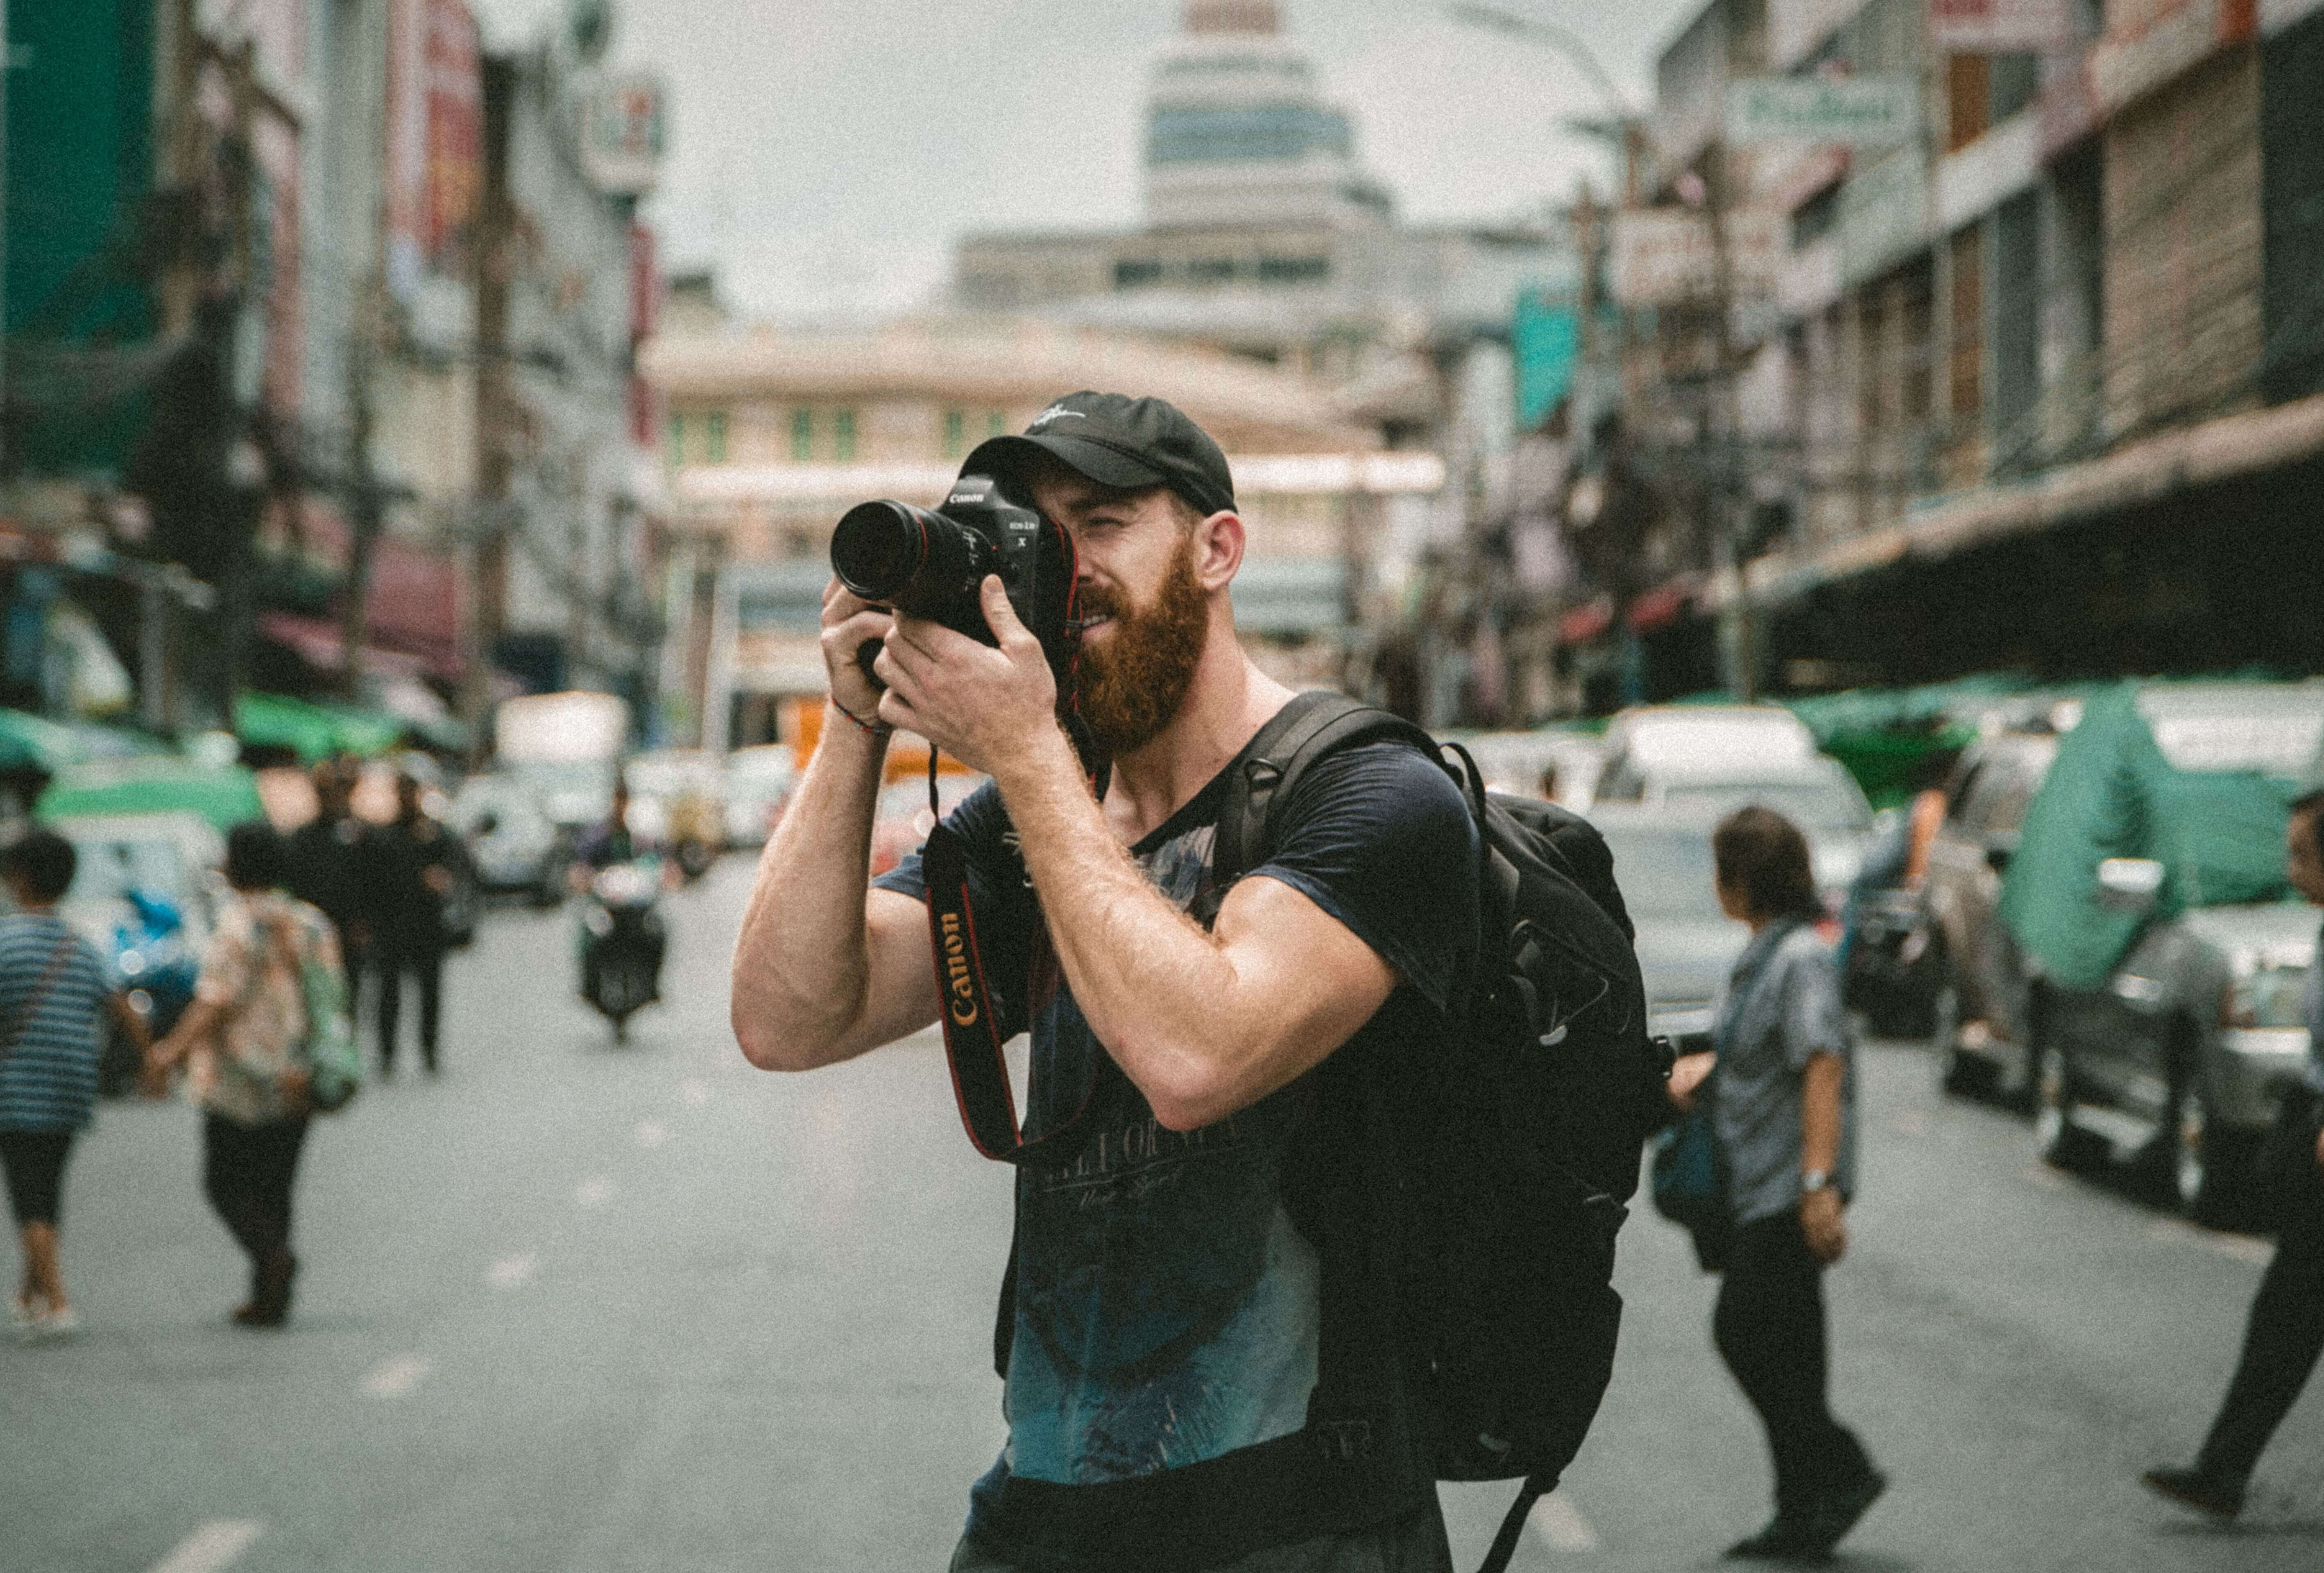 A freelance LLC photographer capturing his needs in a city